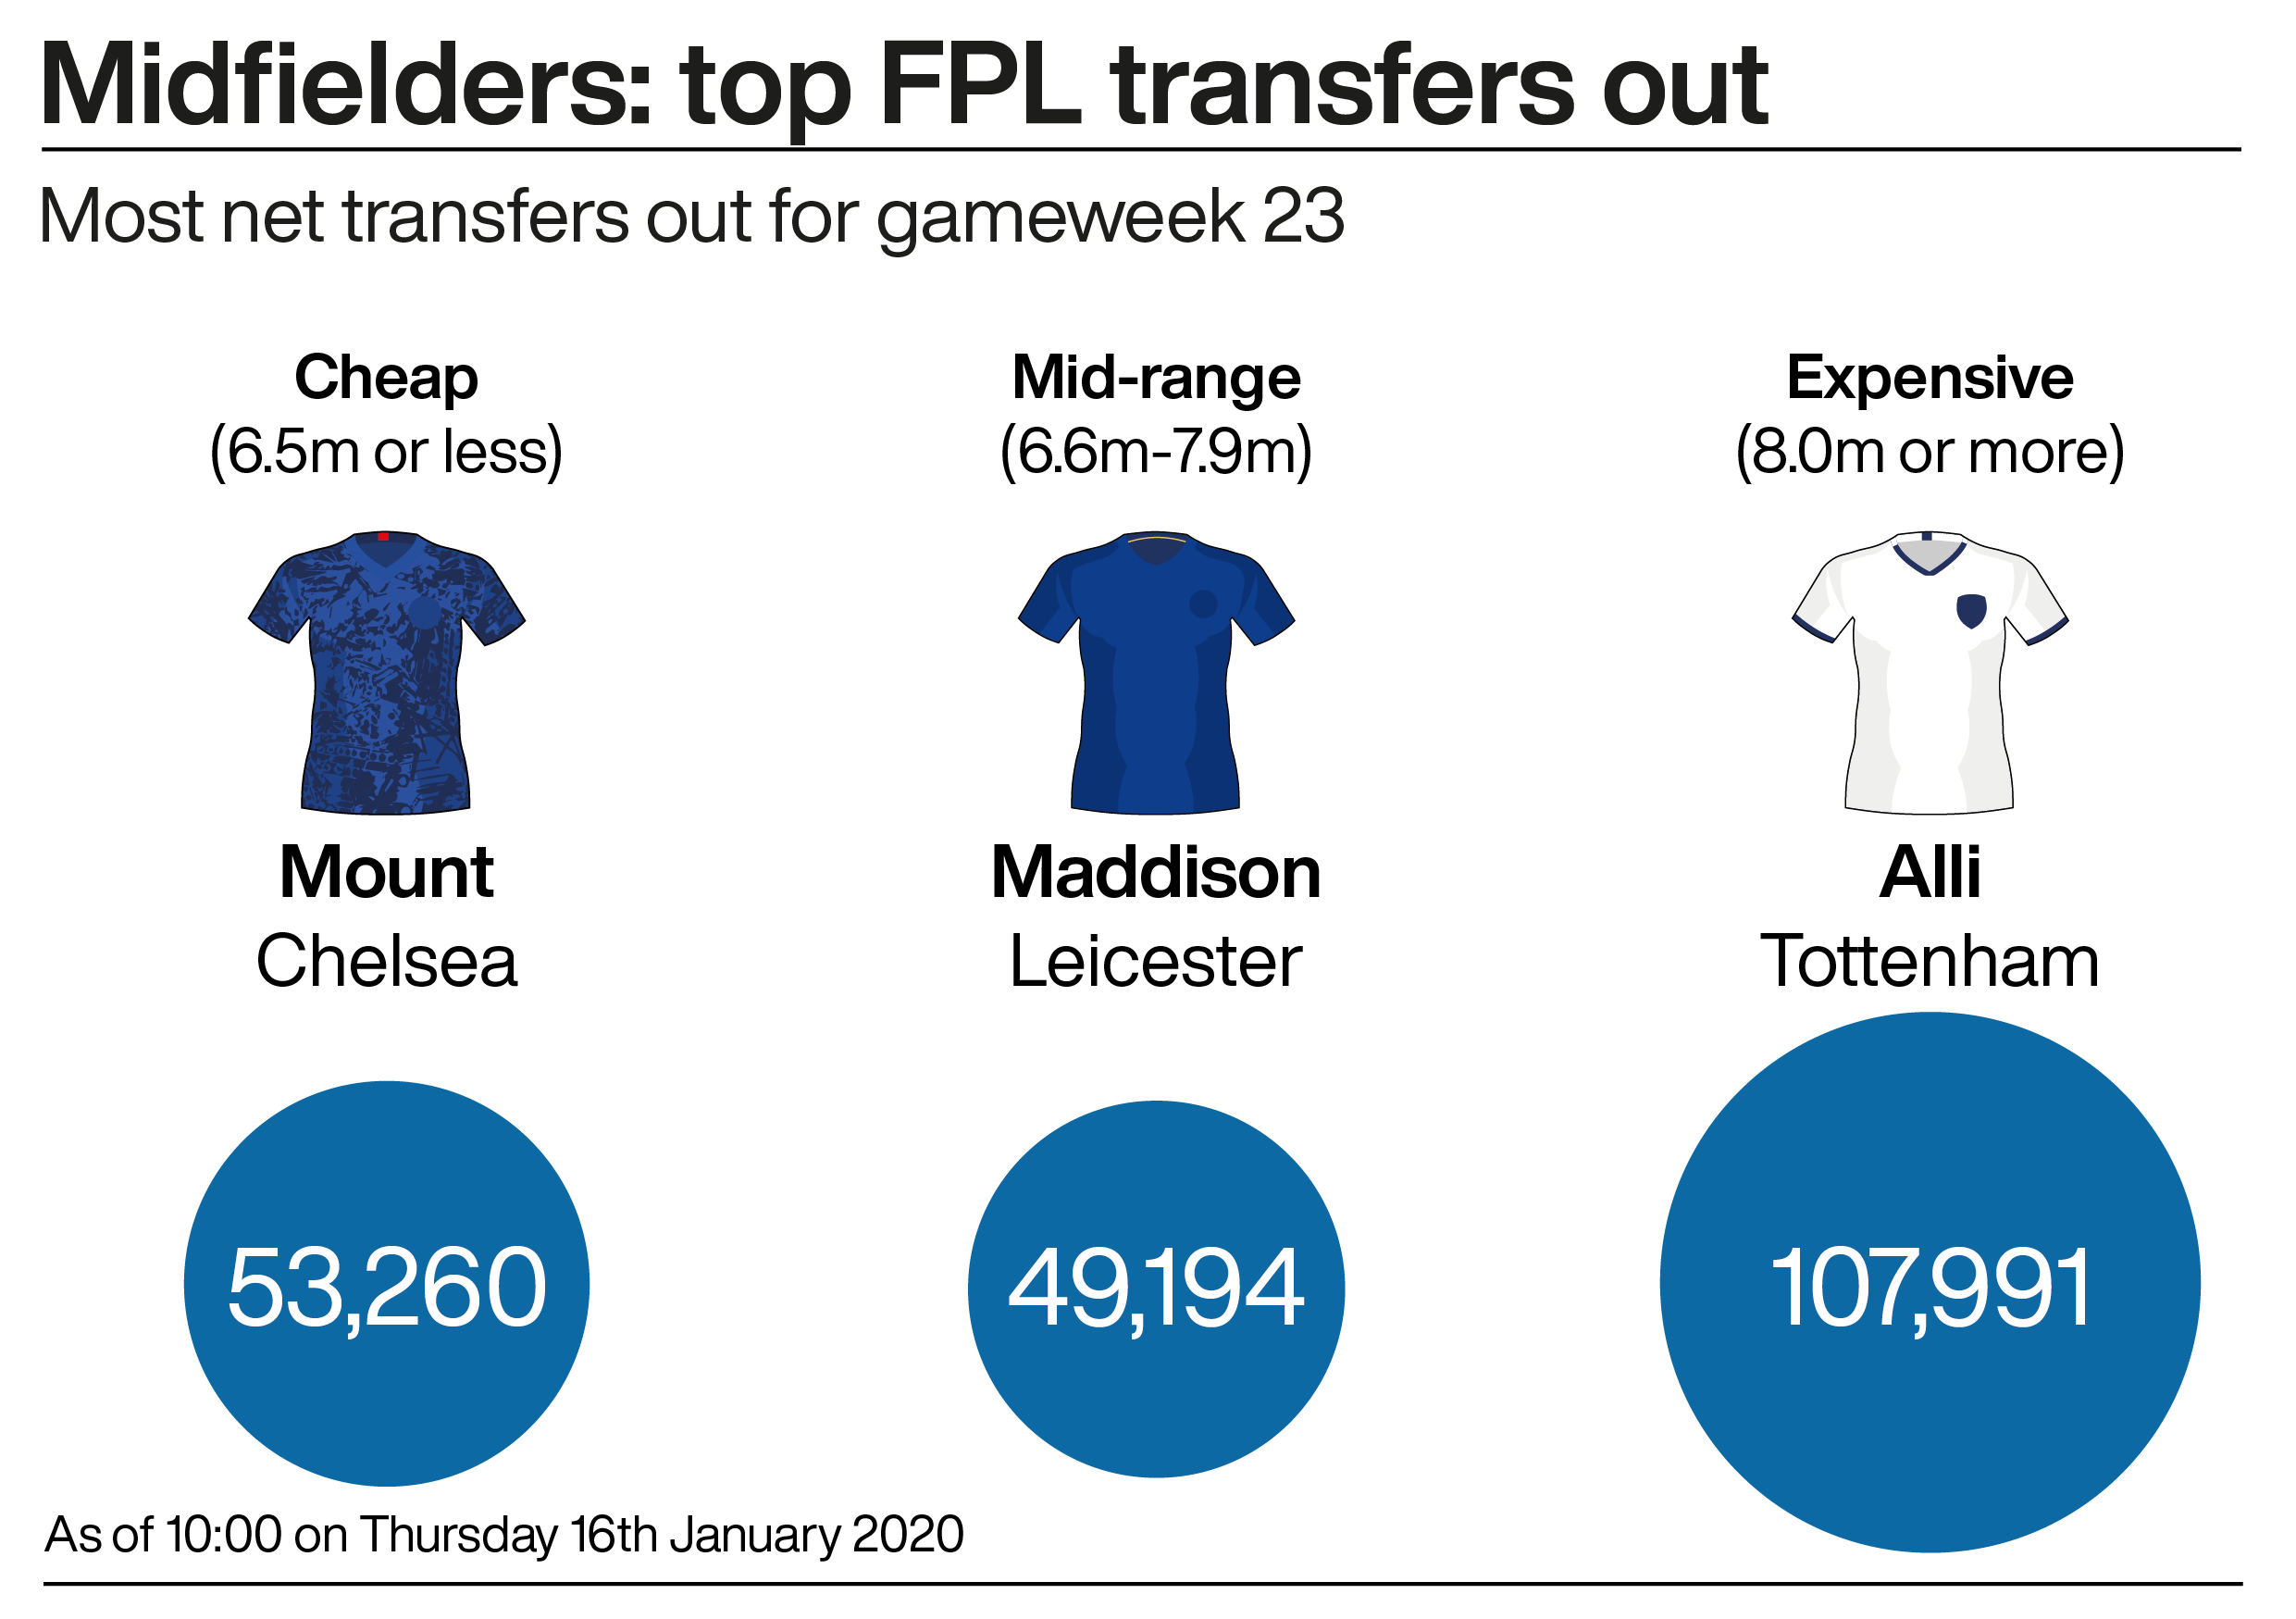 The top transfers out in midfield in gameweek 23